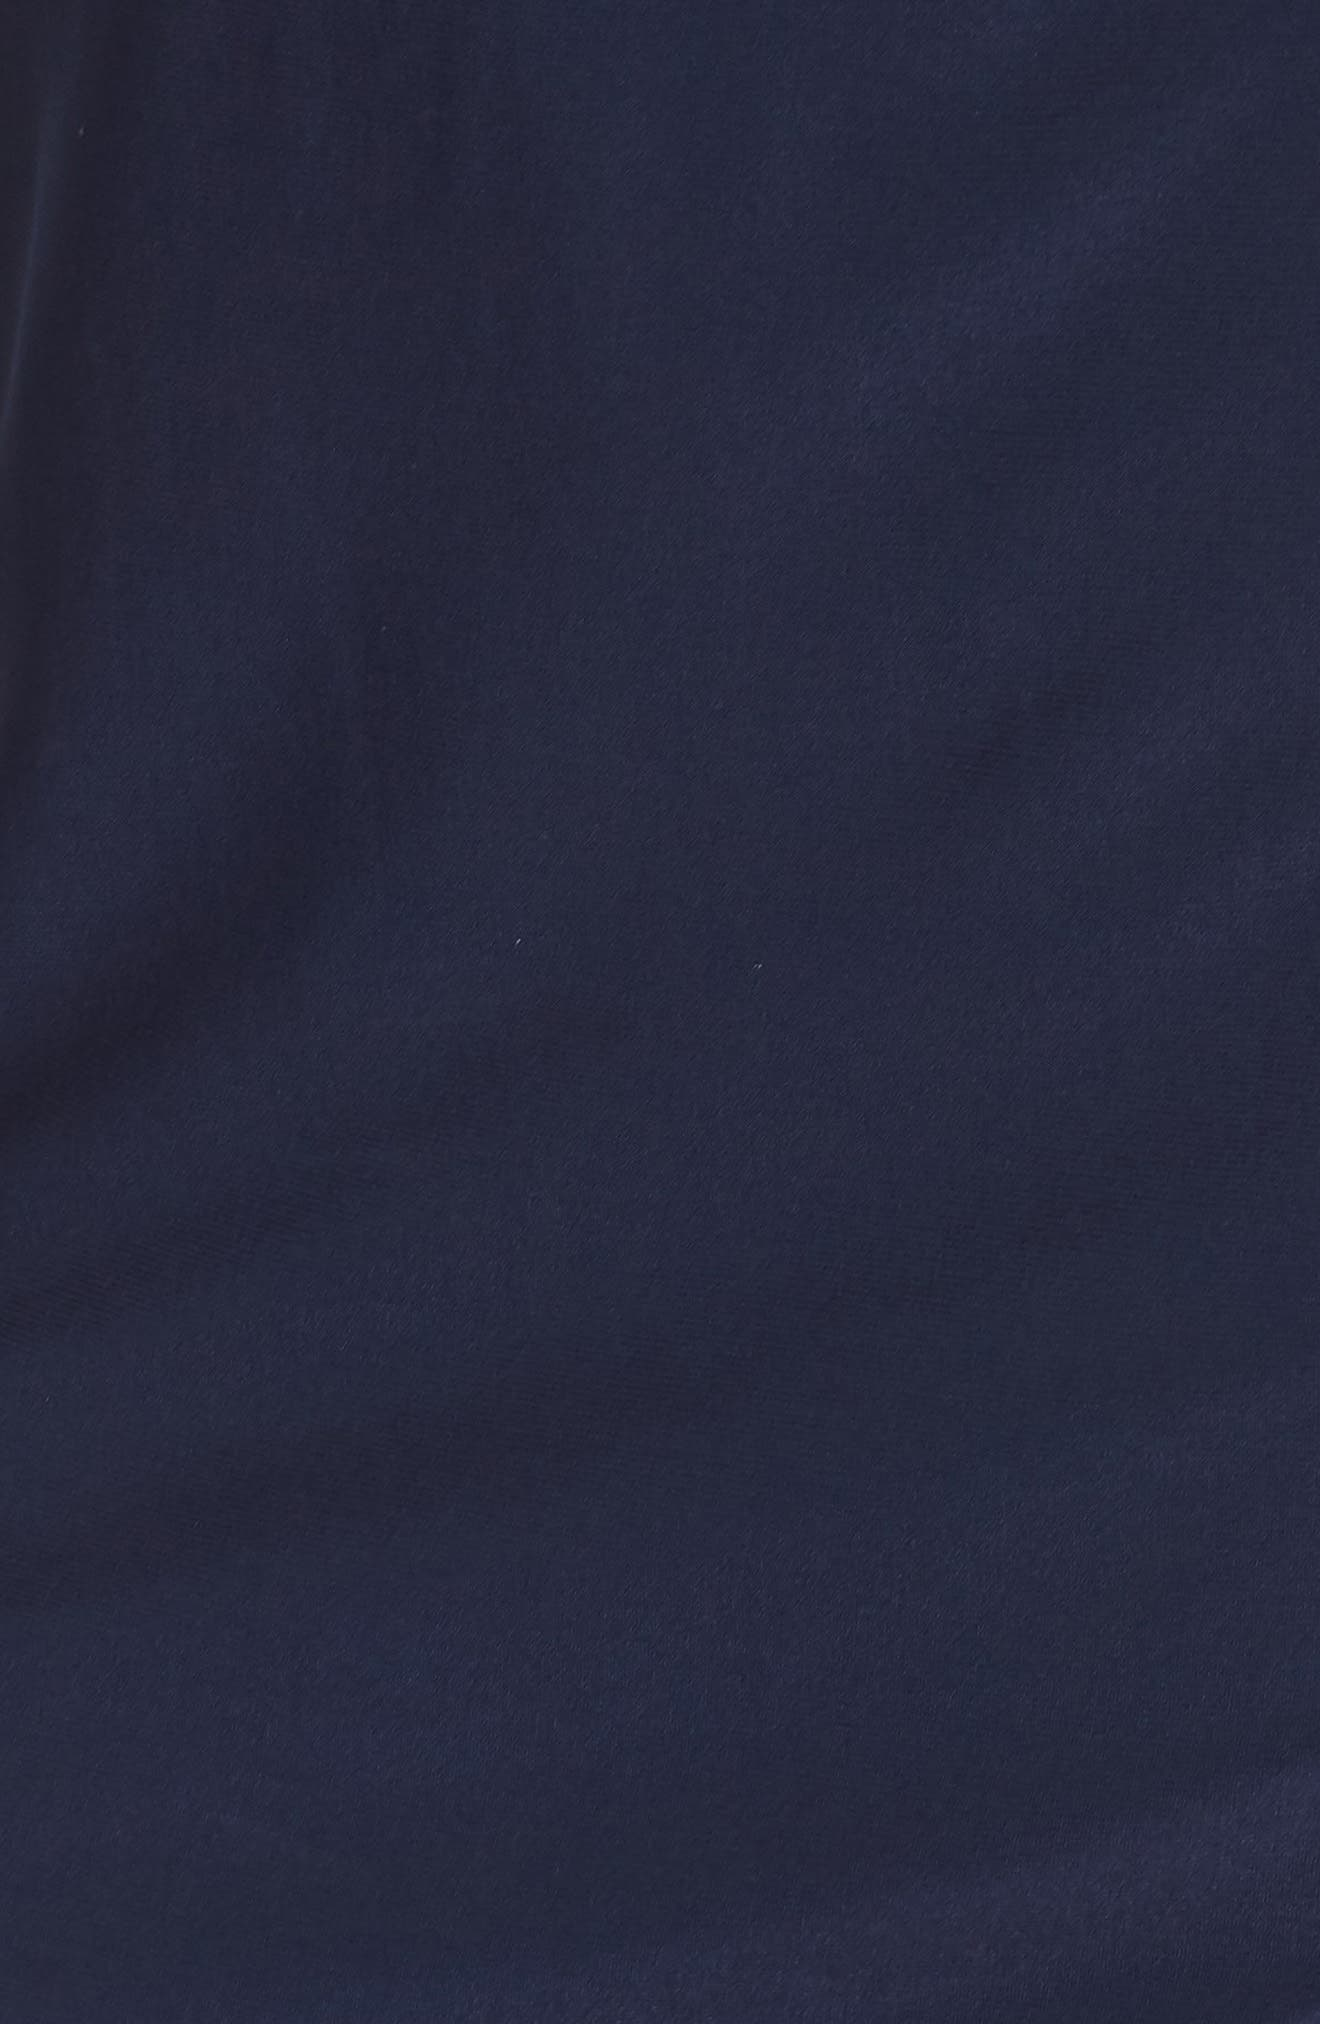 Ruched Jersey Sheath Dress,                             Alternate thumbnail 7, color,                             NAVY